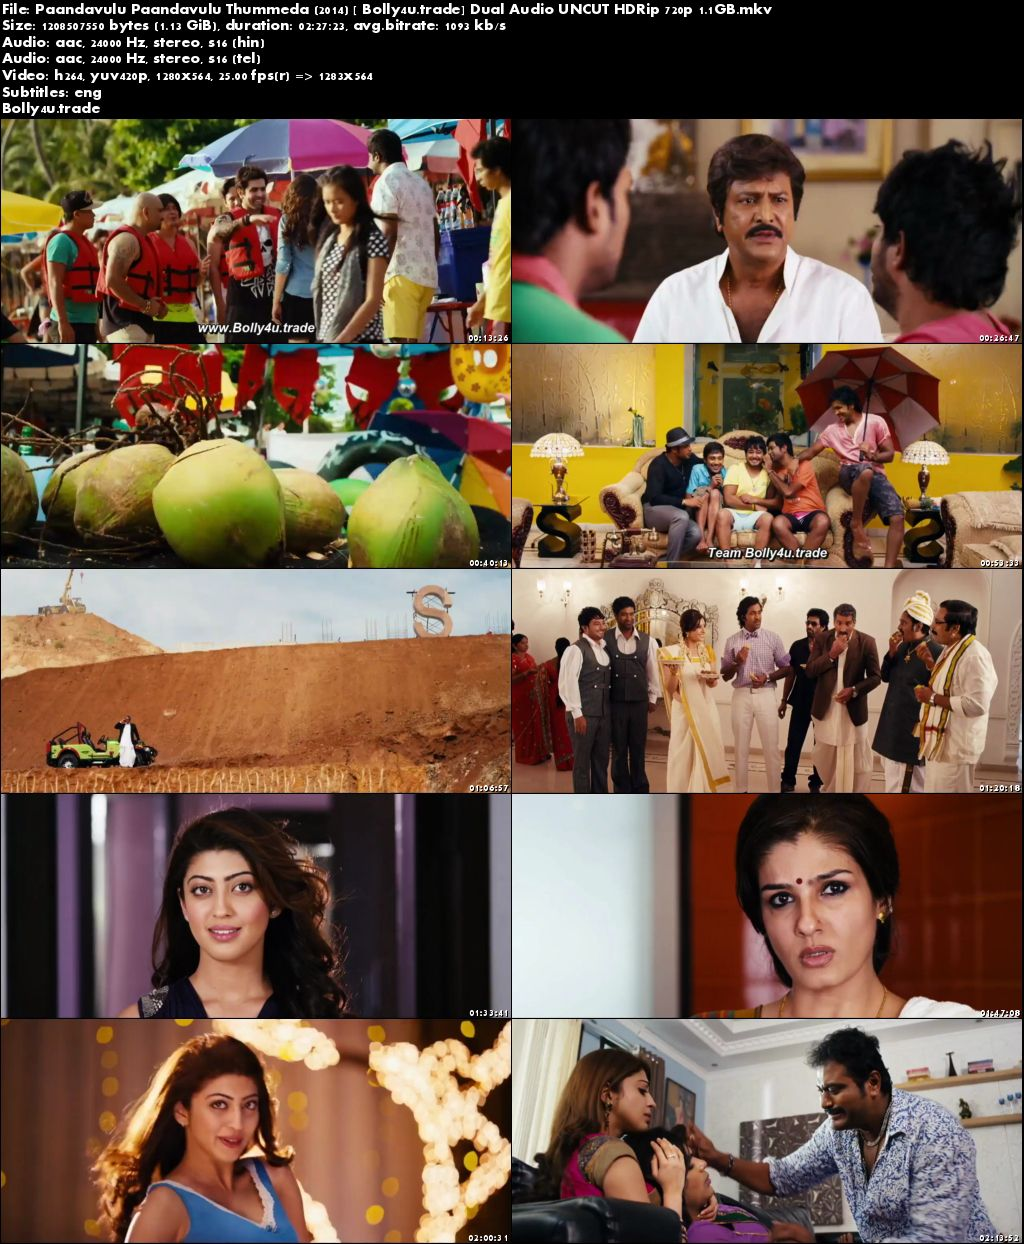 Paandavulu Paandavulu Thummeda 2014 HDRip 450MB UNCUT Hindi Dual Audio 480p Download